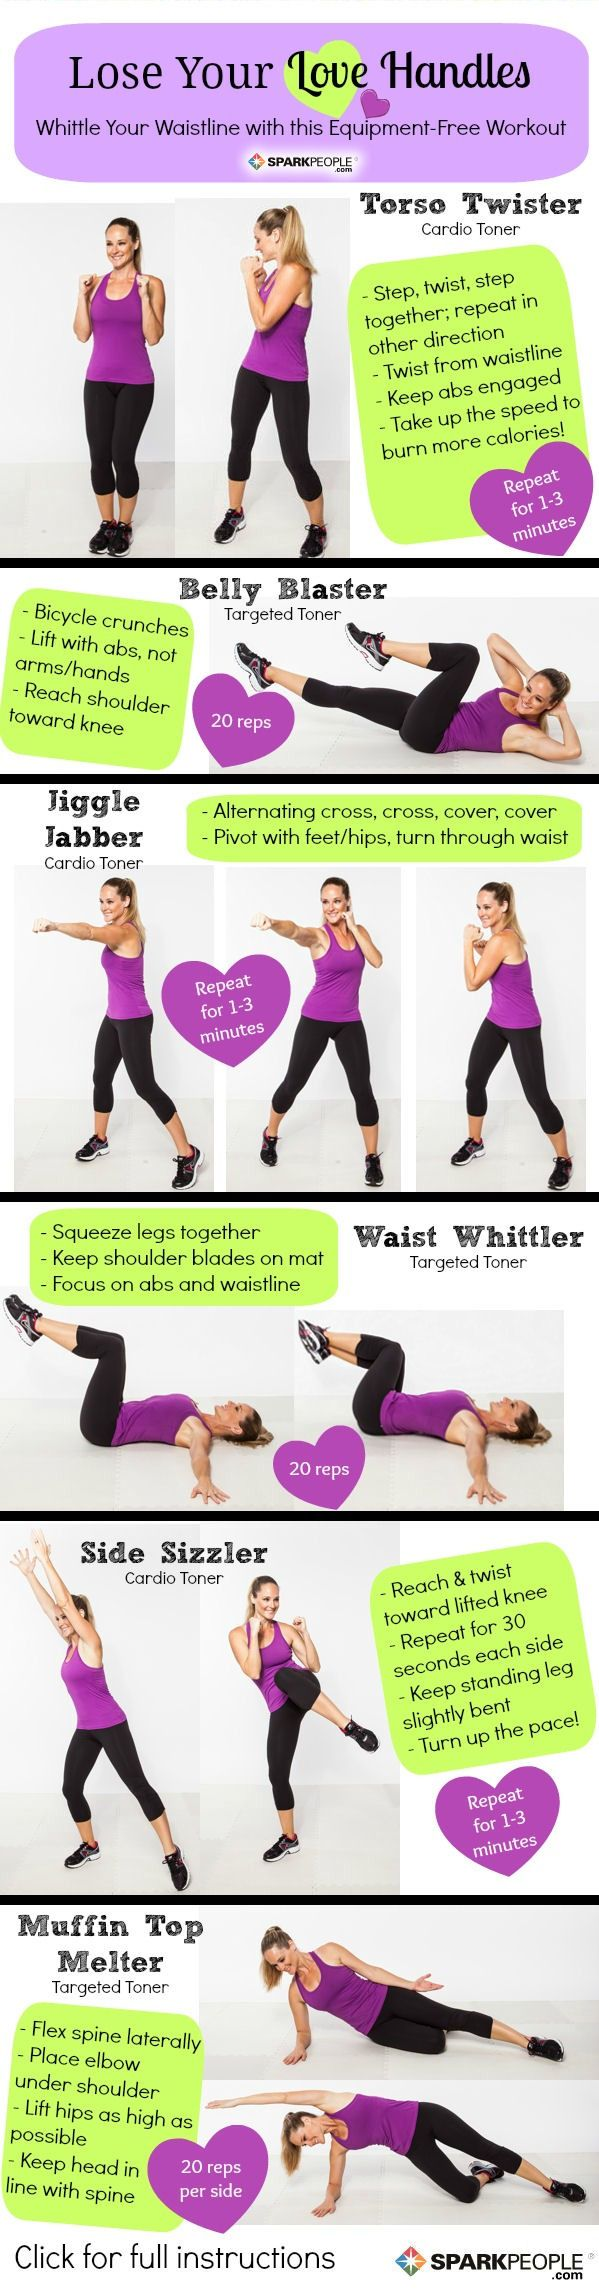 Lose Your Love Handles Click the website link to see how I lost 21 pounds in one month with free trials